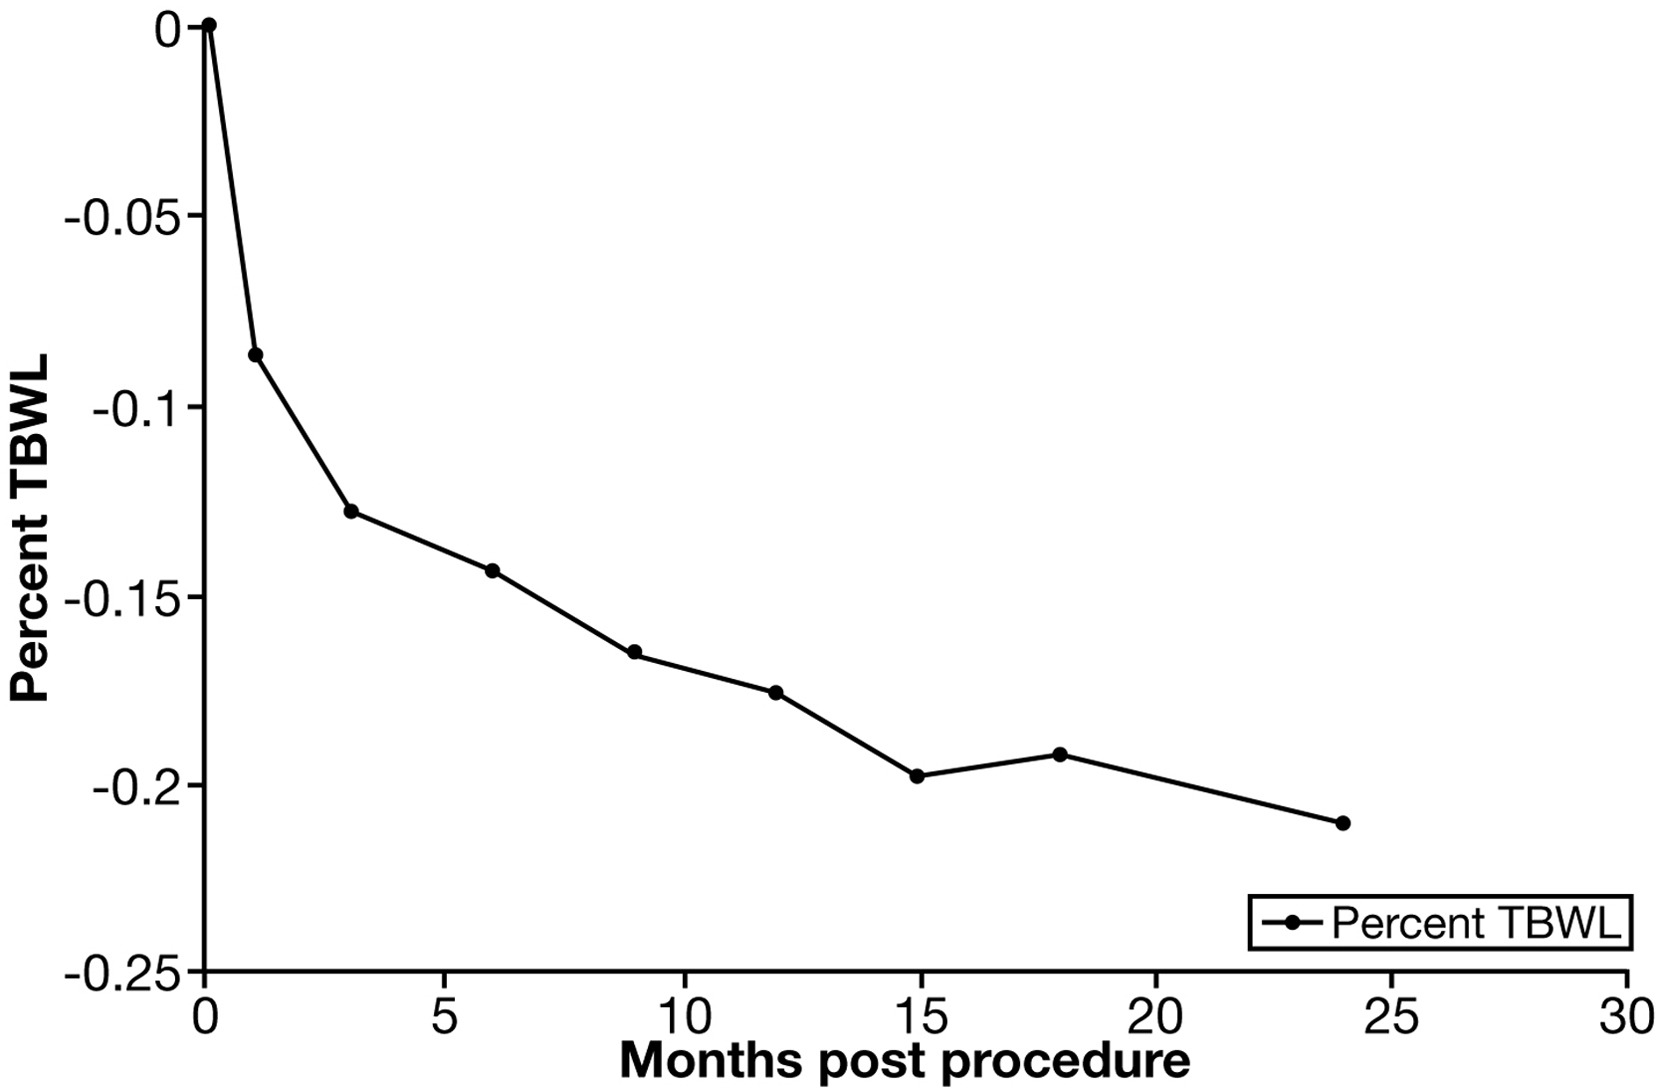 Efficacy Of Endoscopic Sleeve Gastroplasty In Reducing Body Weight